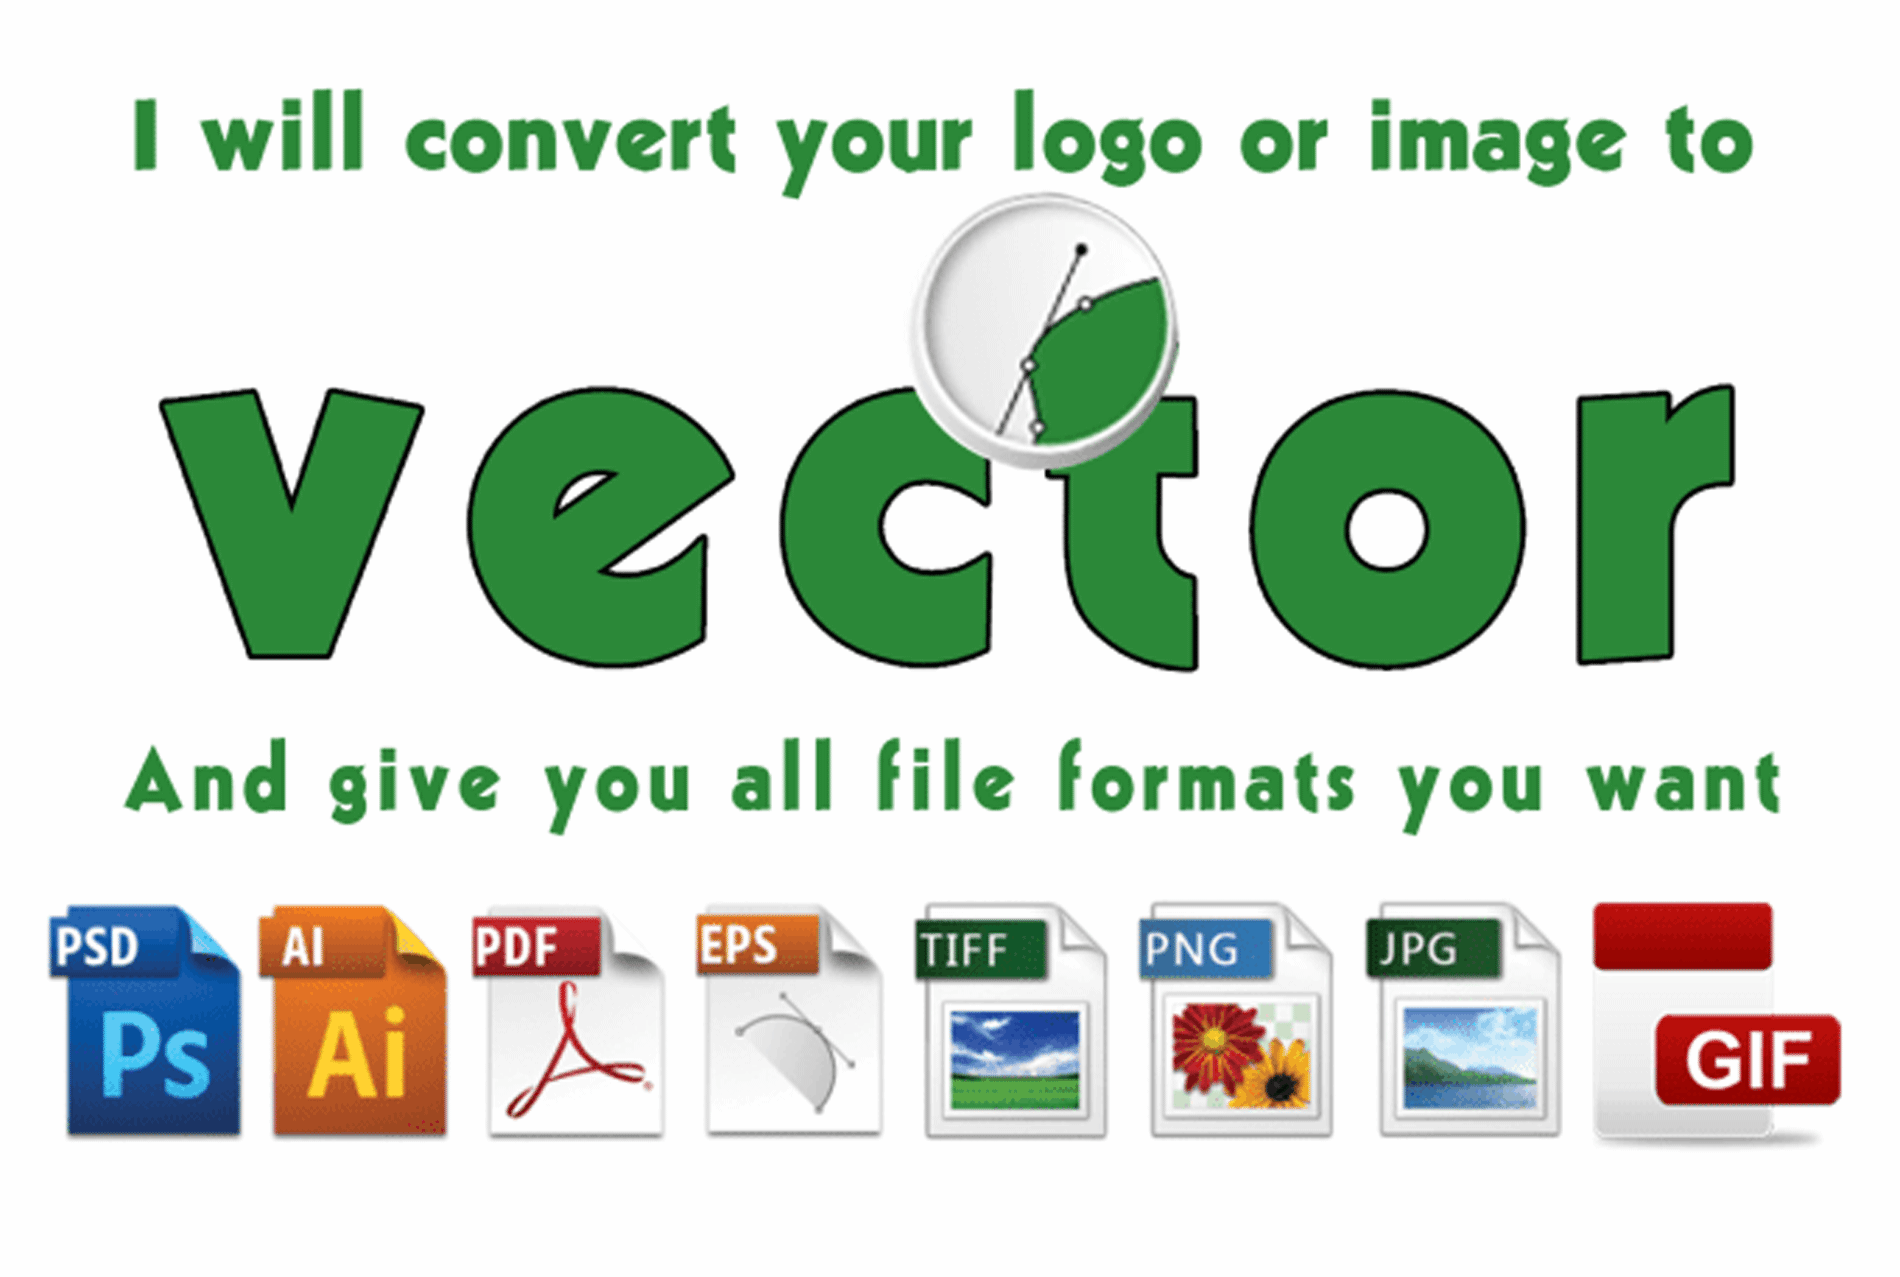 Design The Perfect Logo For Your BusinessI Will Design The Perfect Logo For Your Business